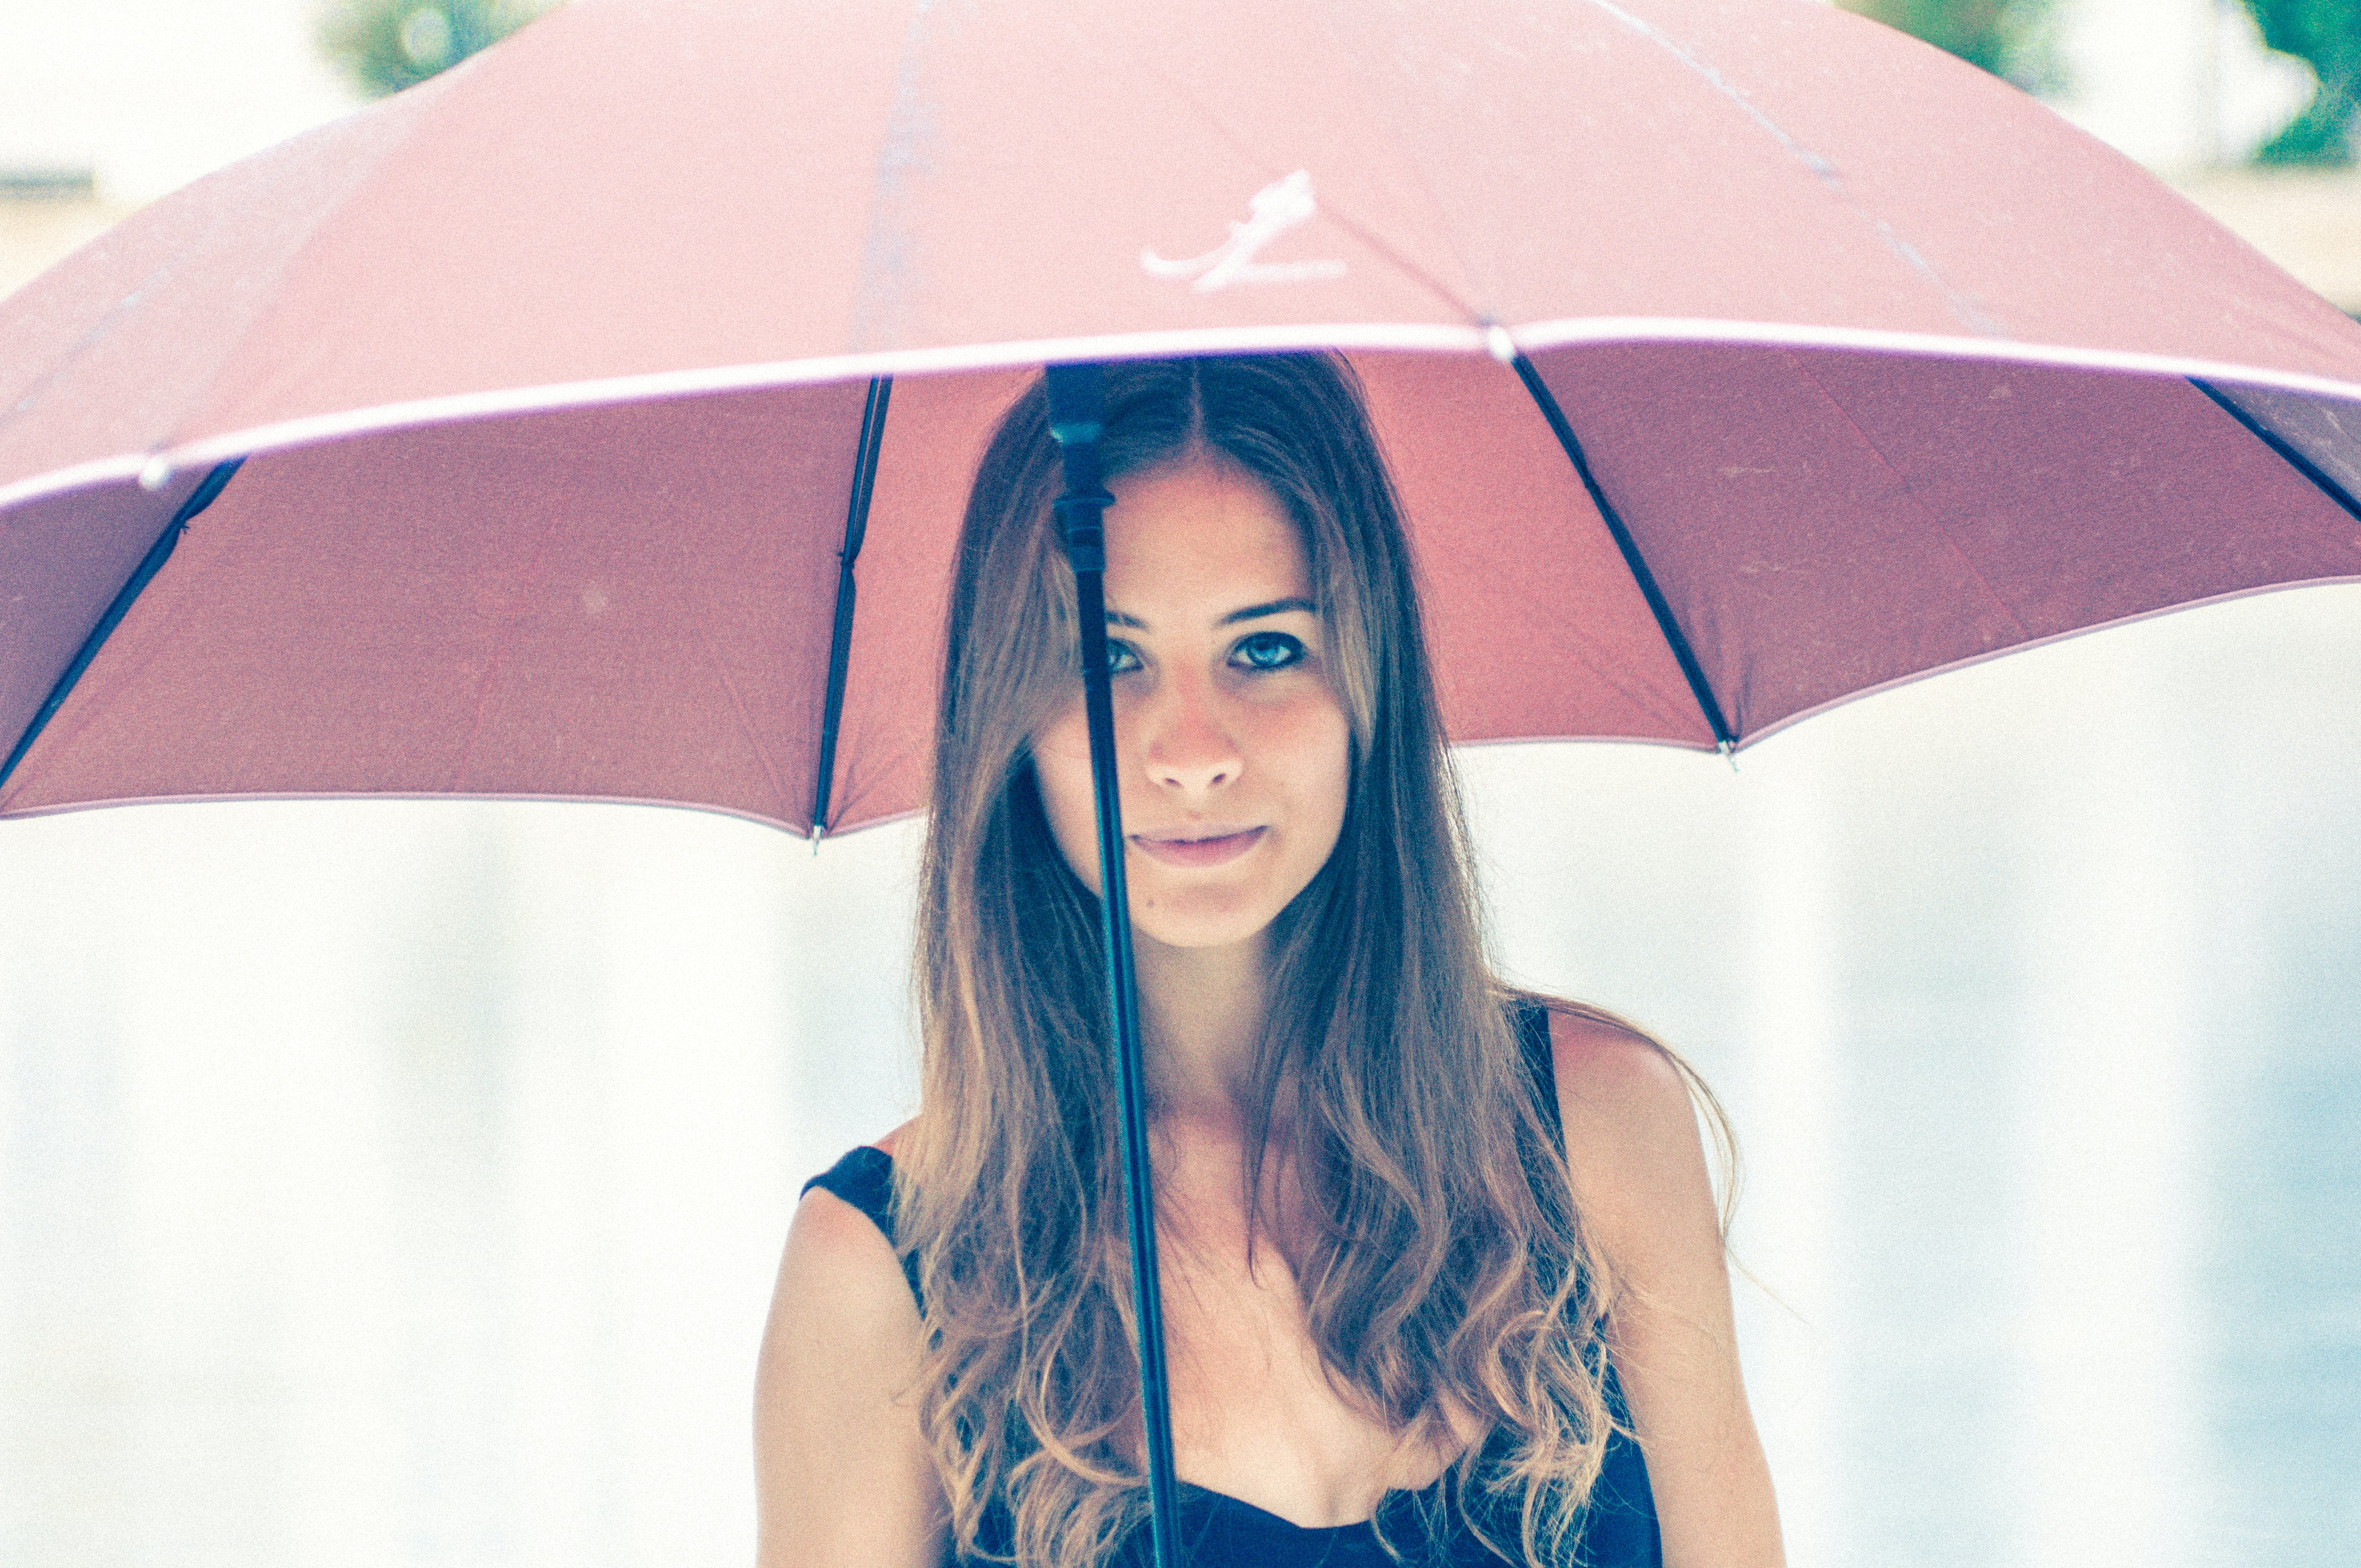 woman holding red umbrella in closeup photography